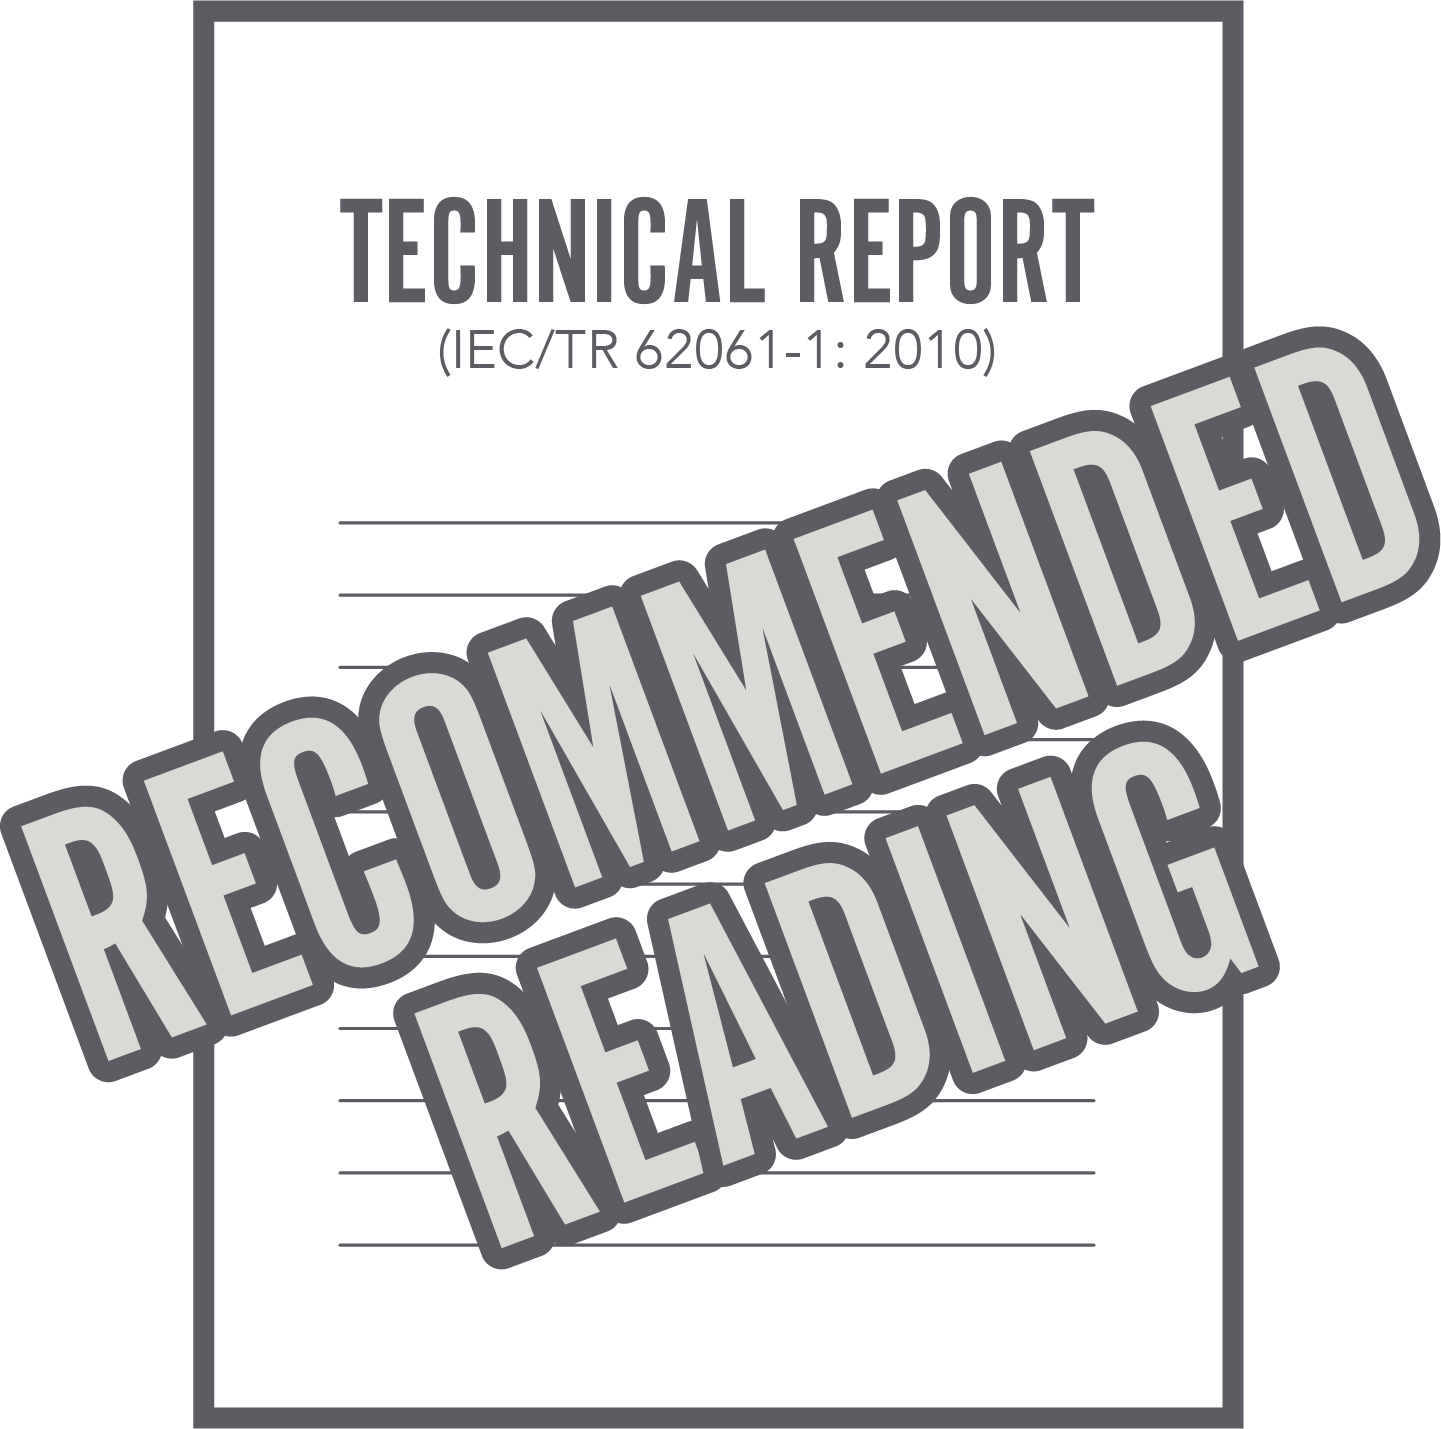 Recommended reading - Technical Report (IEC/TR 62061-1: 2010)